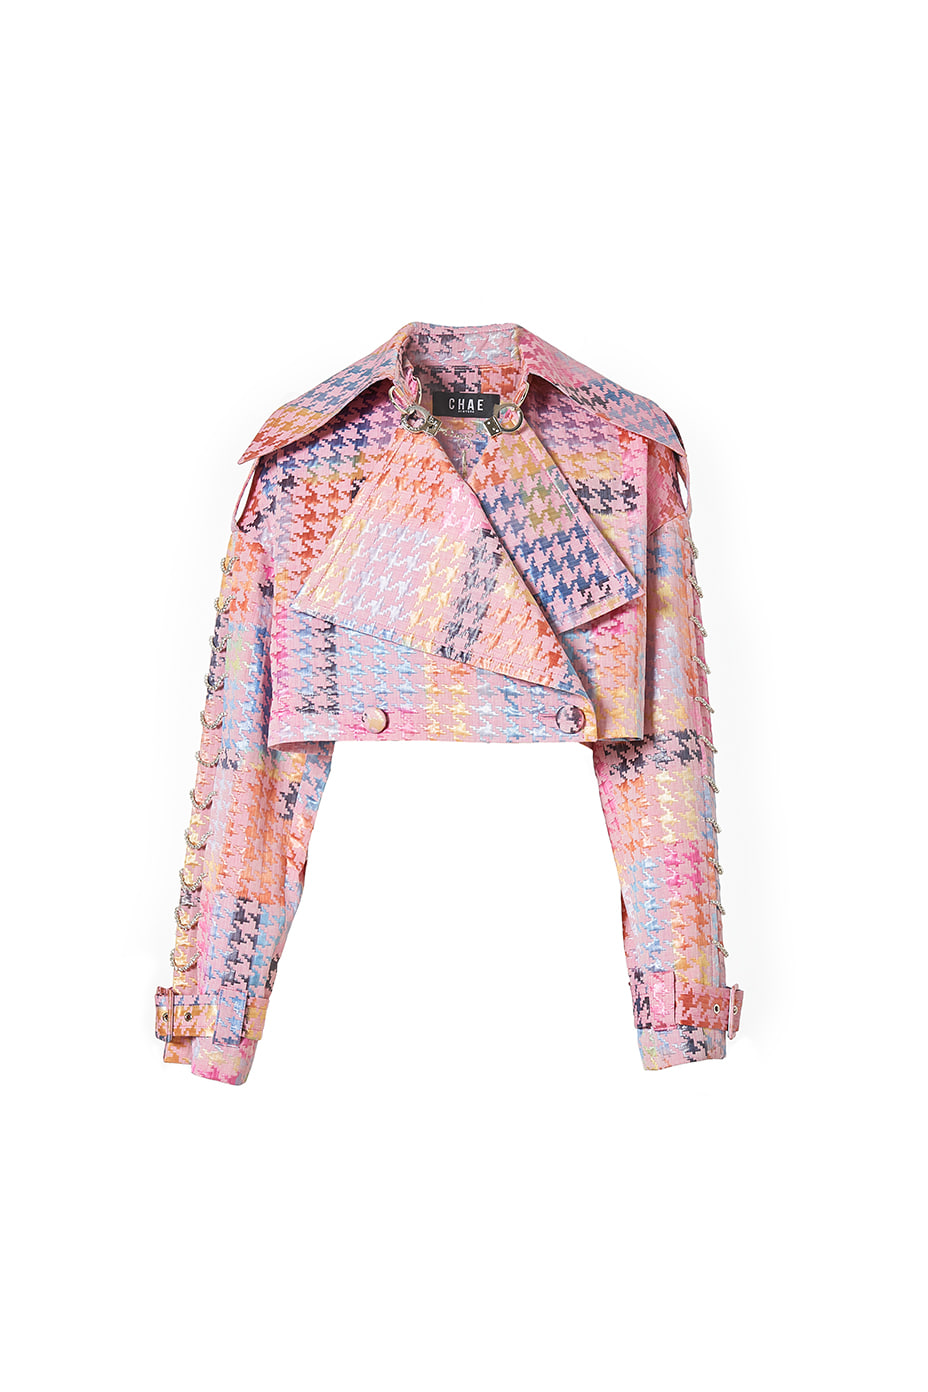 [Runway_Pre-order/Order Made] Rainbow Houndstooth cropped jacket